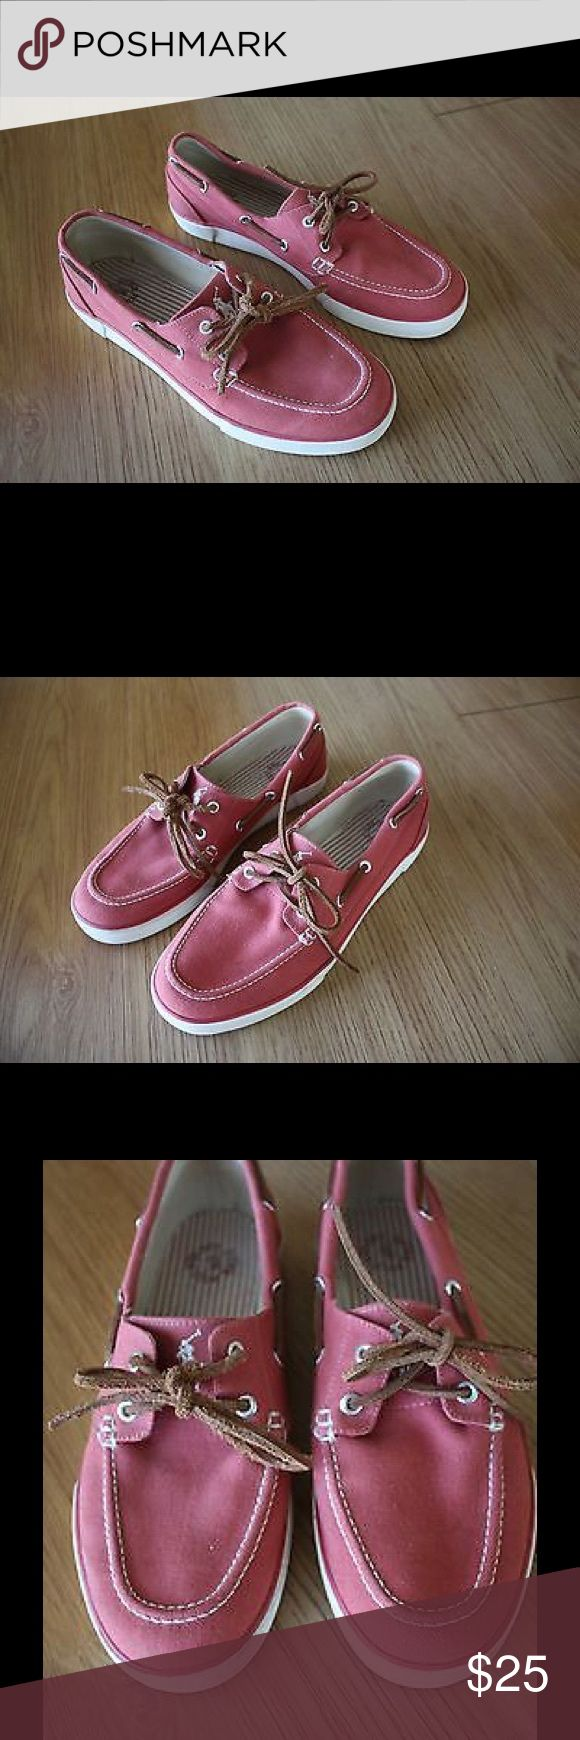 "Polo Ralph Lauren ""Sander"" Salmon Boat Shoes Polo by Ralph Lauren ""Sander"" Canvas Salmon Boat Shoes in Men's Size 10.5 D. These shoes are in great condition with some minor wear, see photos for details. Polo by Ralph Lauren Shoes Boat Shoes"